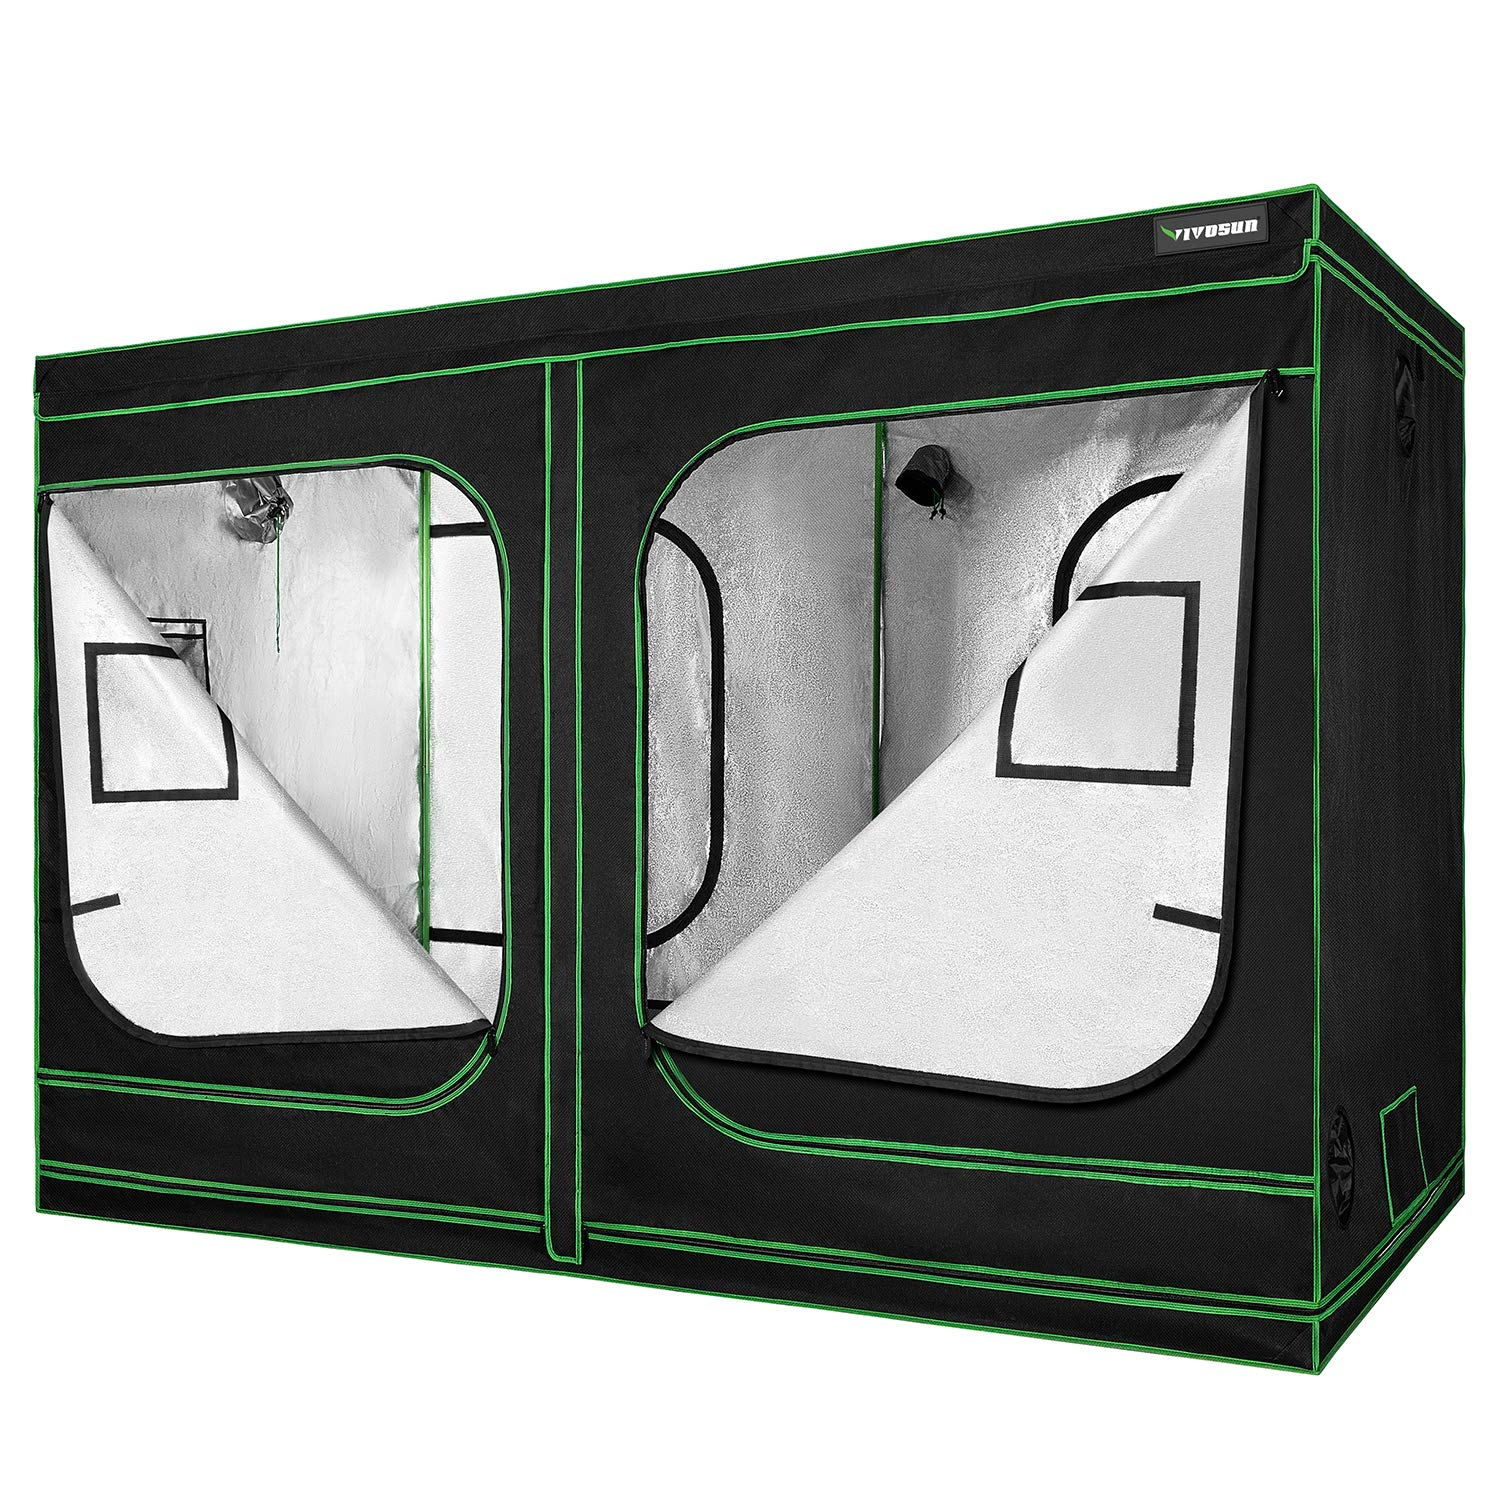 """VIVOSUN 96""""x48""""x80"""" Mylar Hydroponic Grow Tent with Observation Window and Floor Tray for Indoor Plant Growing 4'x8'"""